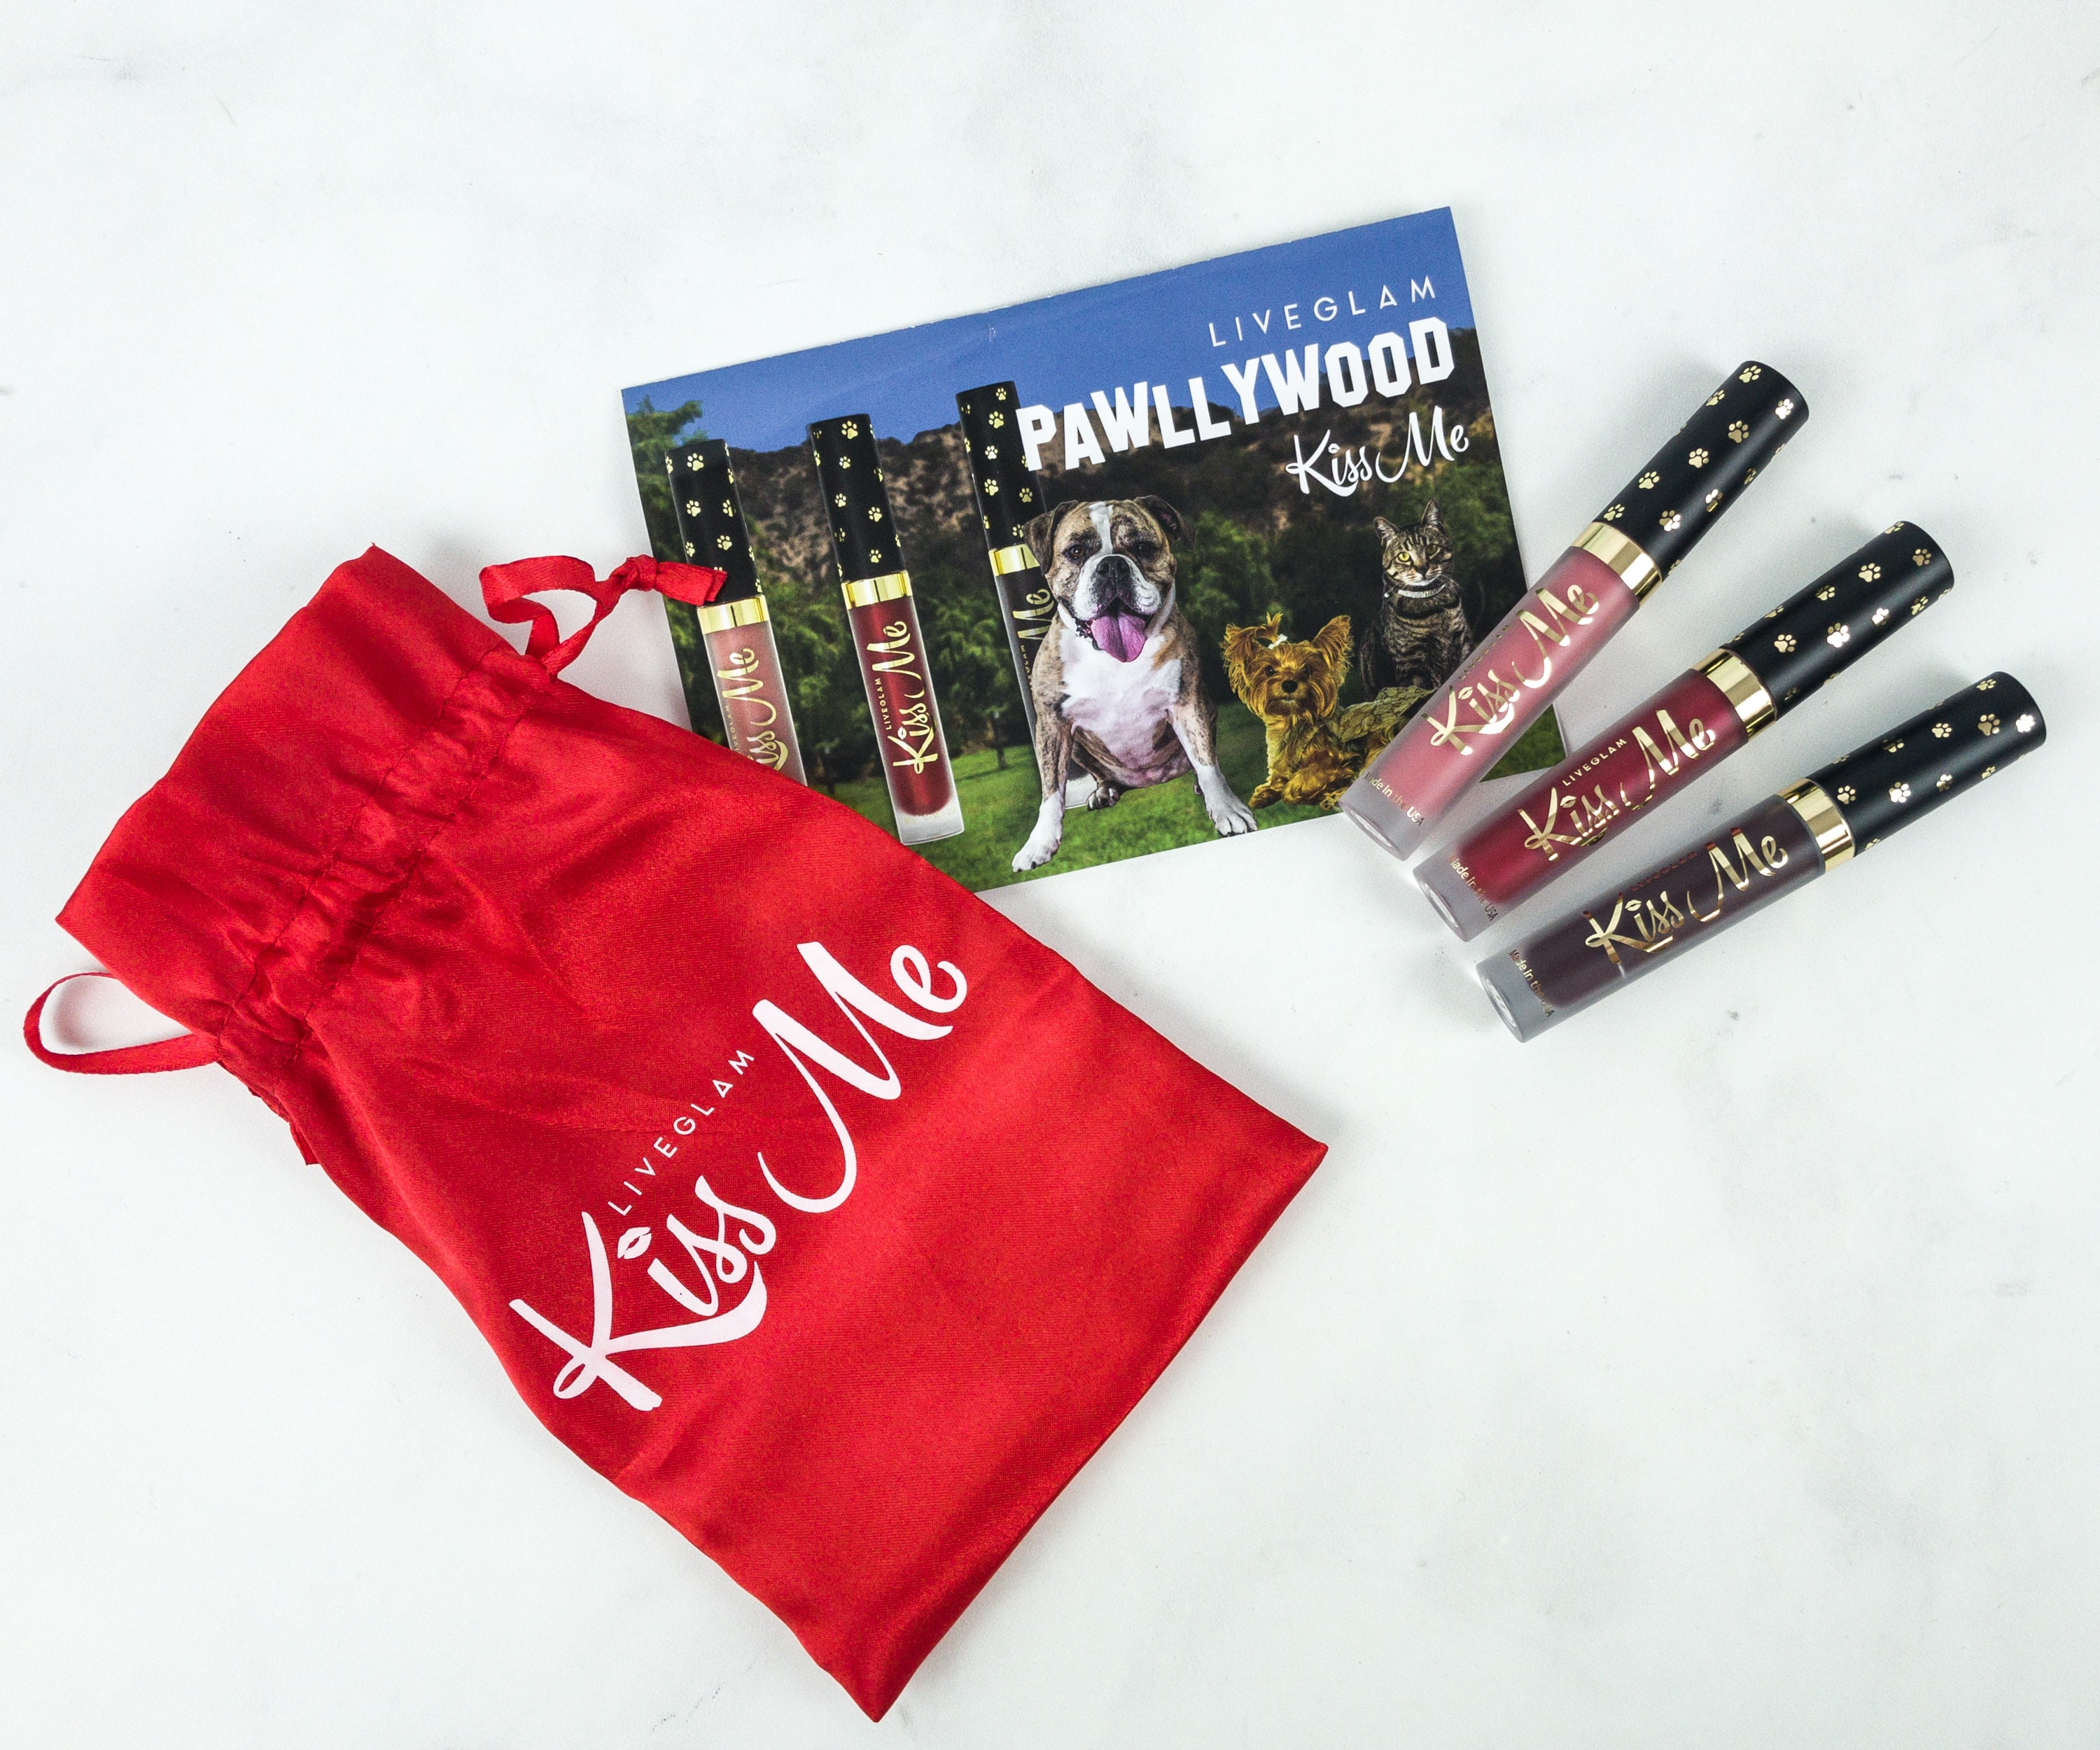 KissMe Lipstick Club January 2019 Subscription Box Review + FREE Lipstick Coupon!